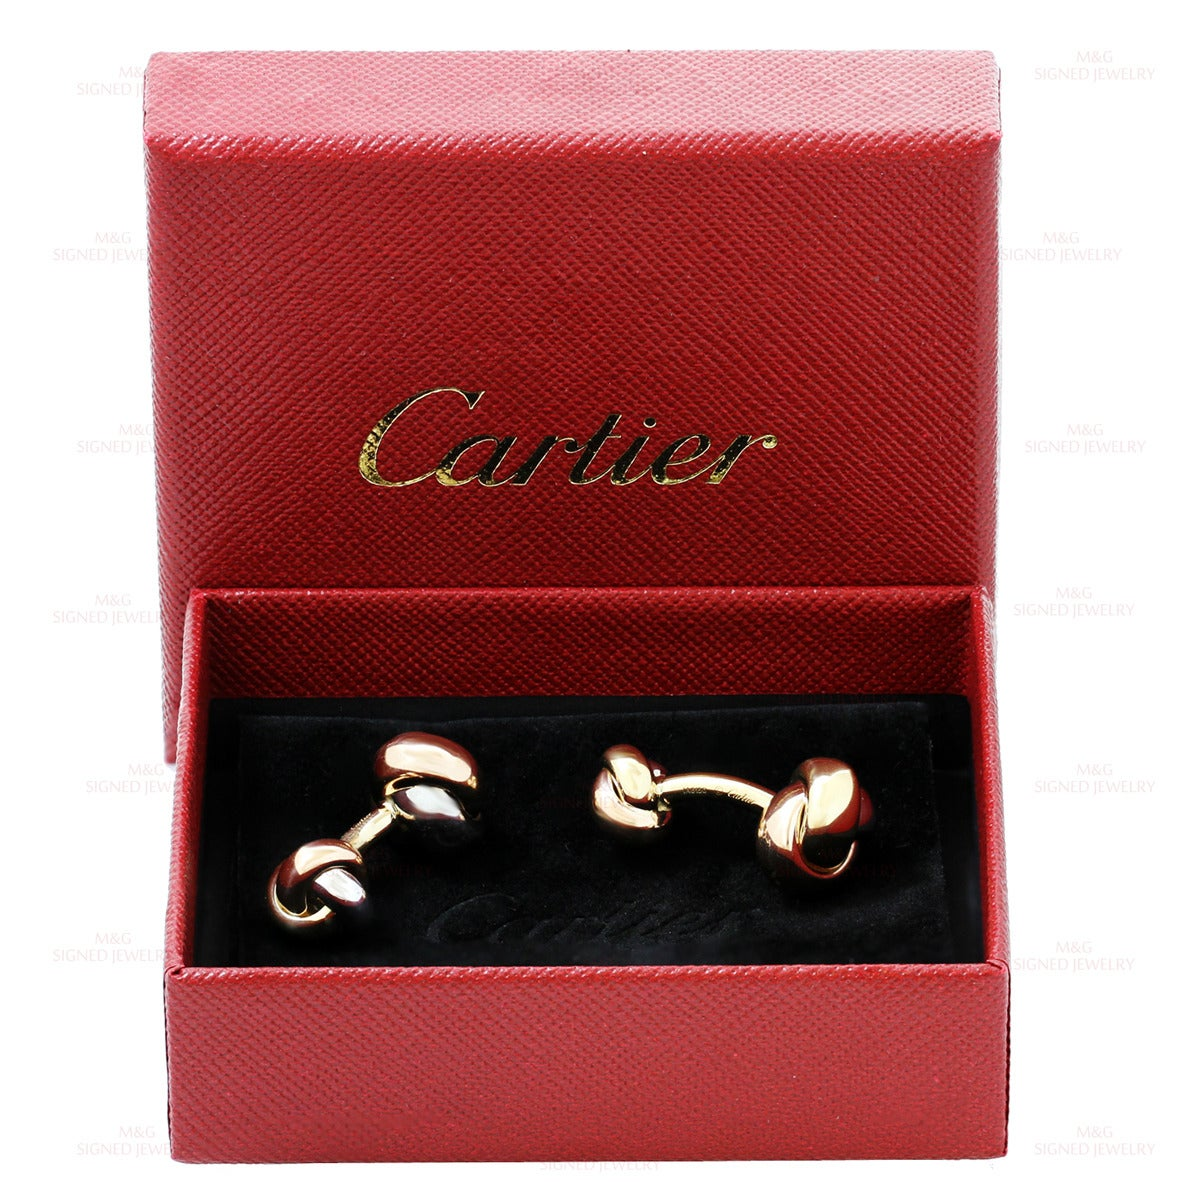 These modern Cartier cufflinks from the classic Trinity collection feature a chic knot design made in solid 18k yellow, white, and rose gold. Measurements: 0.38